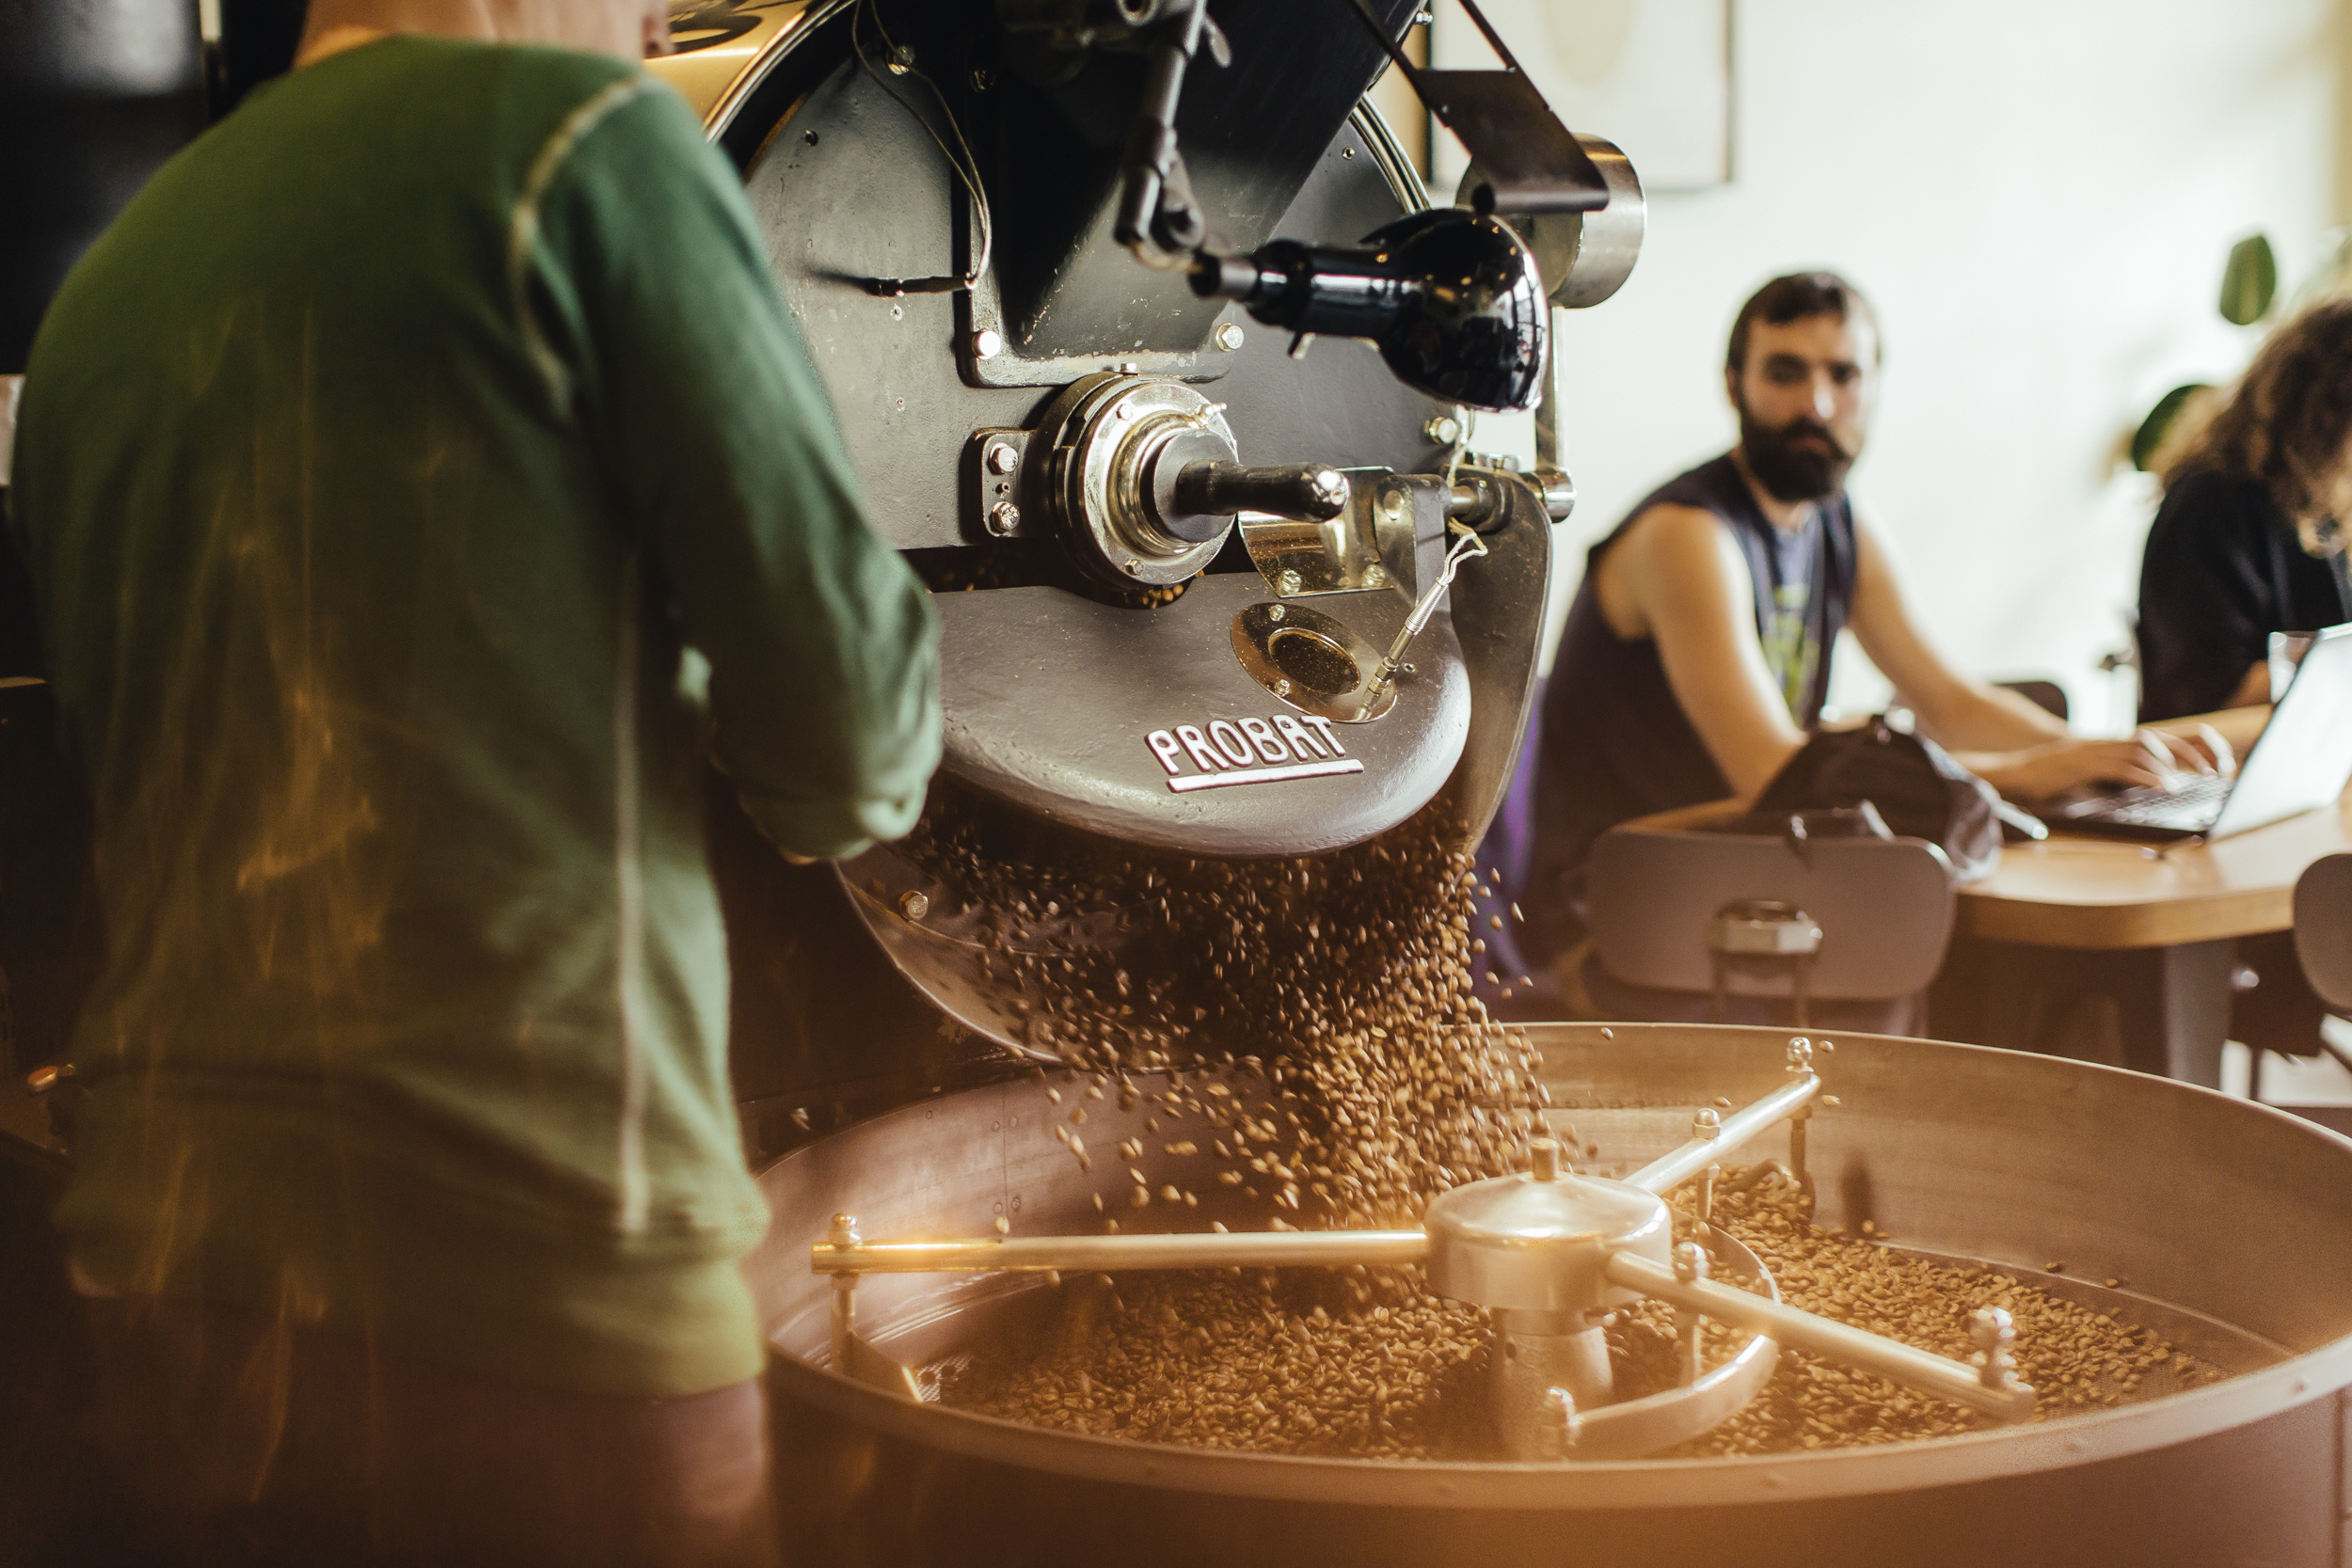 """Wille doing his thing, rocking out some sick coffee - even the bearded dude to the right is eyeing that coffee saying, """"Gimme that coffee"""""""